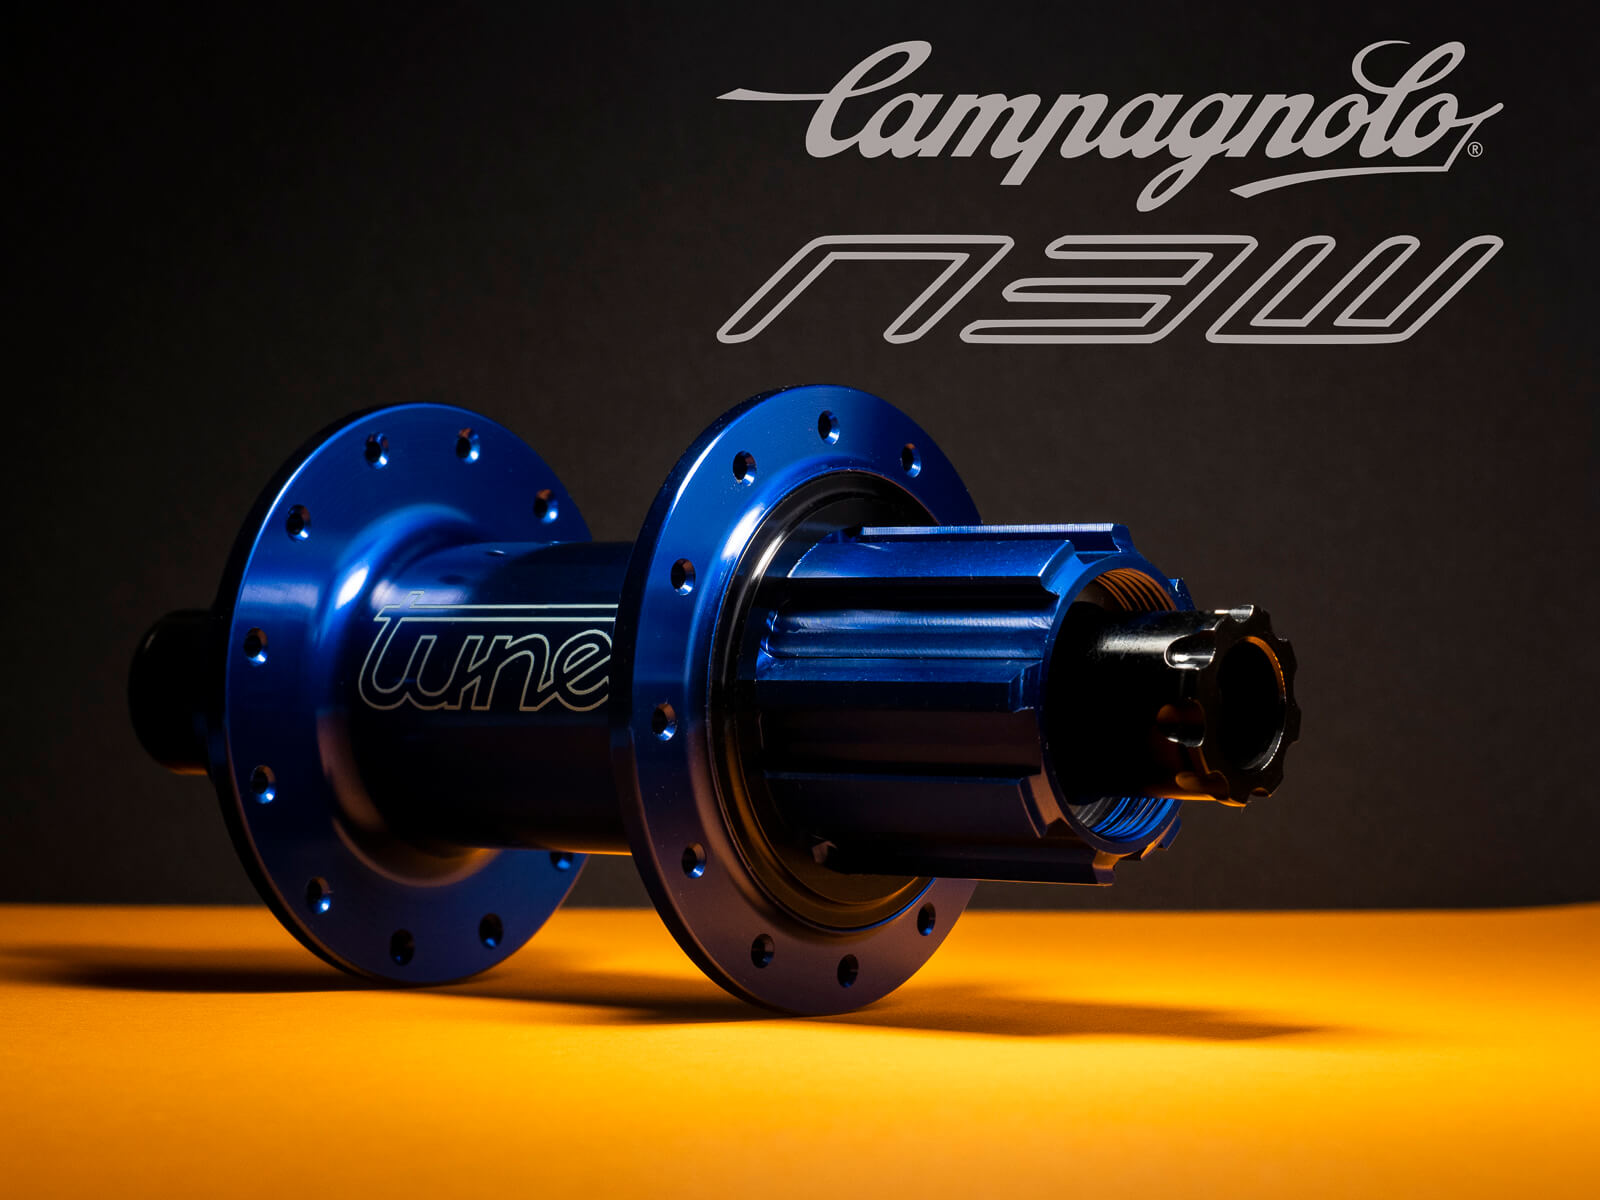 tune hubs with Campagnolo N3W freehub!